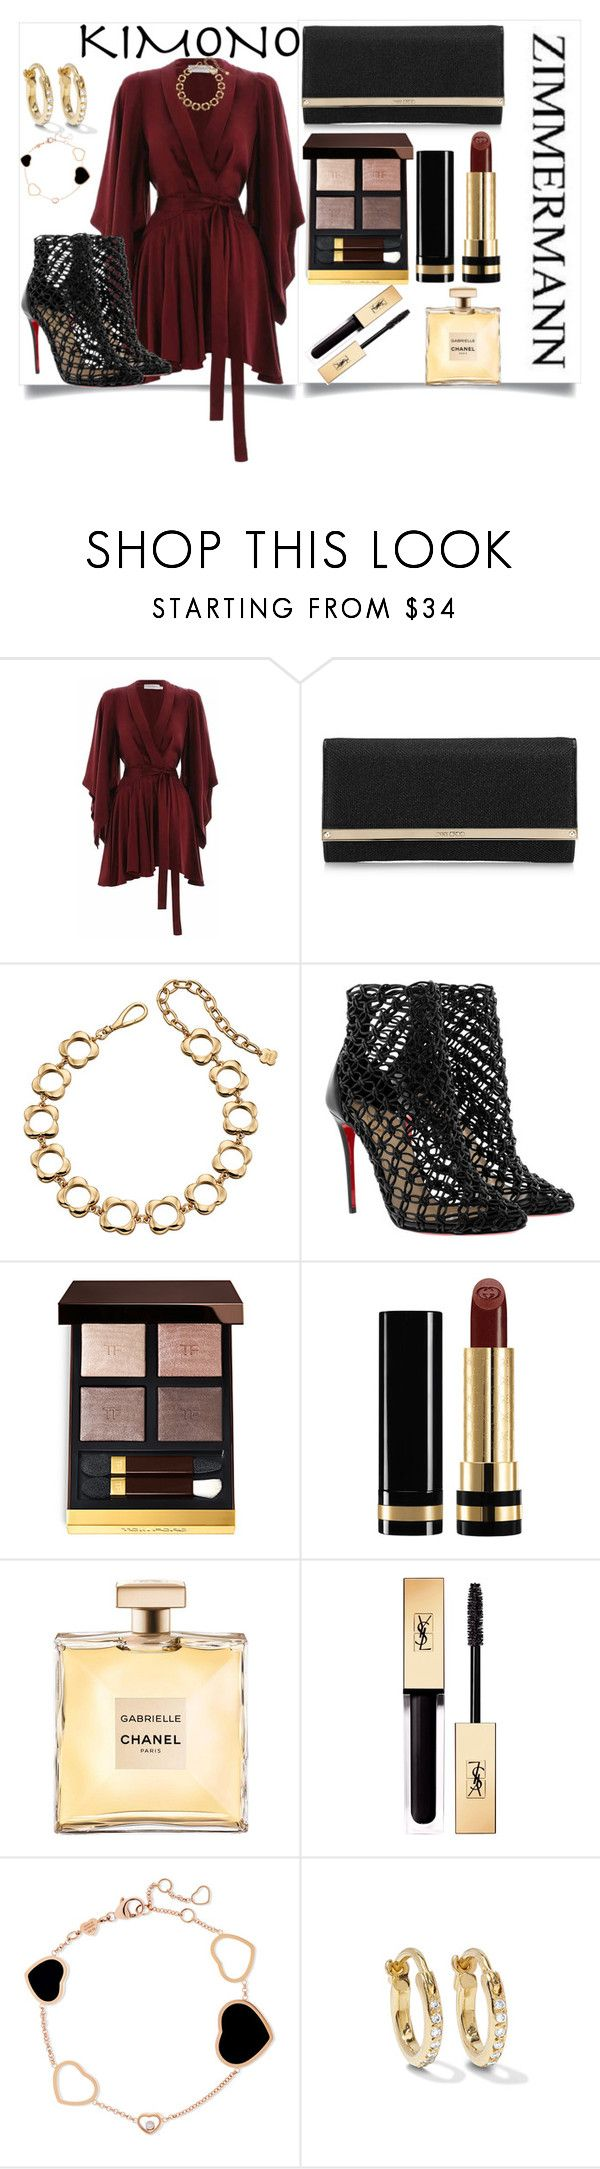 """Kimono"" by perezbarrios on Polyvore featuring Zimmermann, Jimmy Choo, Orla Kiely, Christian Louboutin, Tom Ford, Gucci, Yves Saint Laurent, Chopard and Ileana Makri"